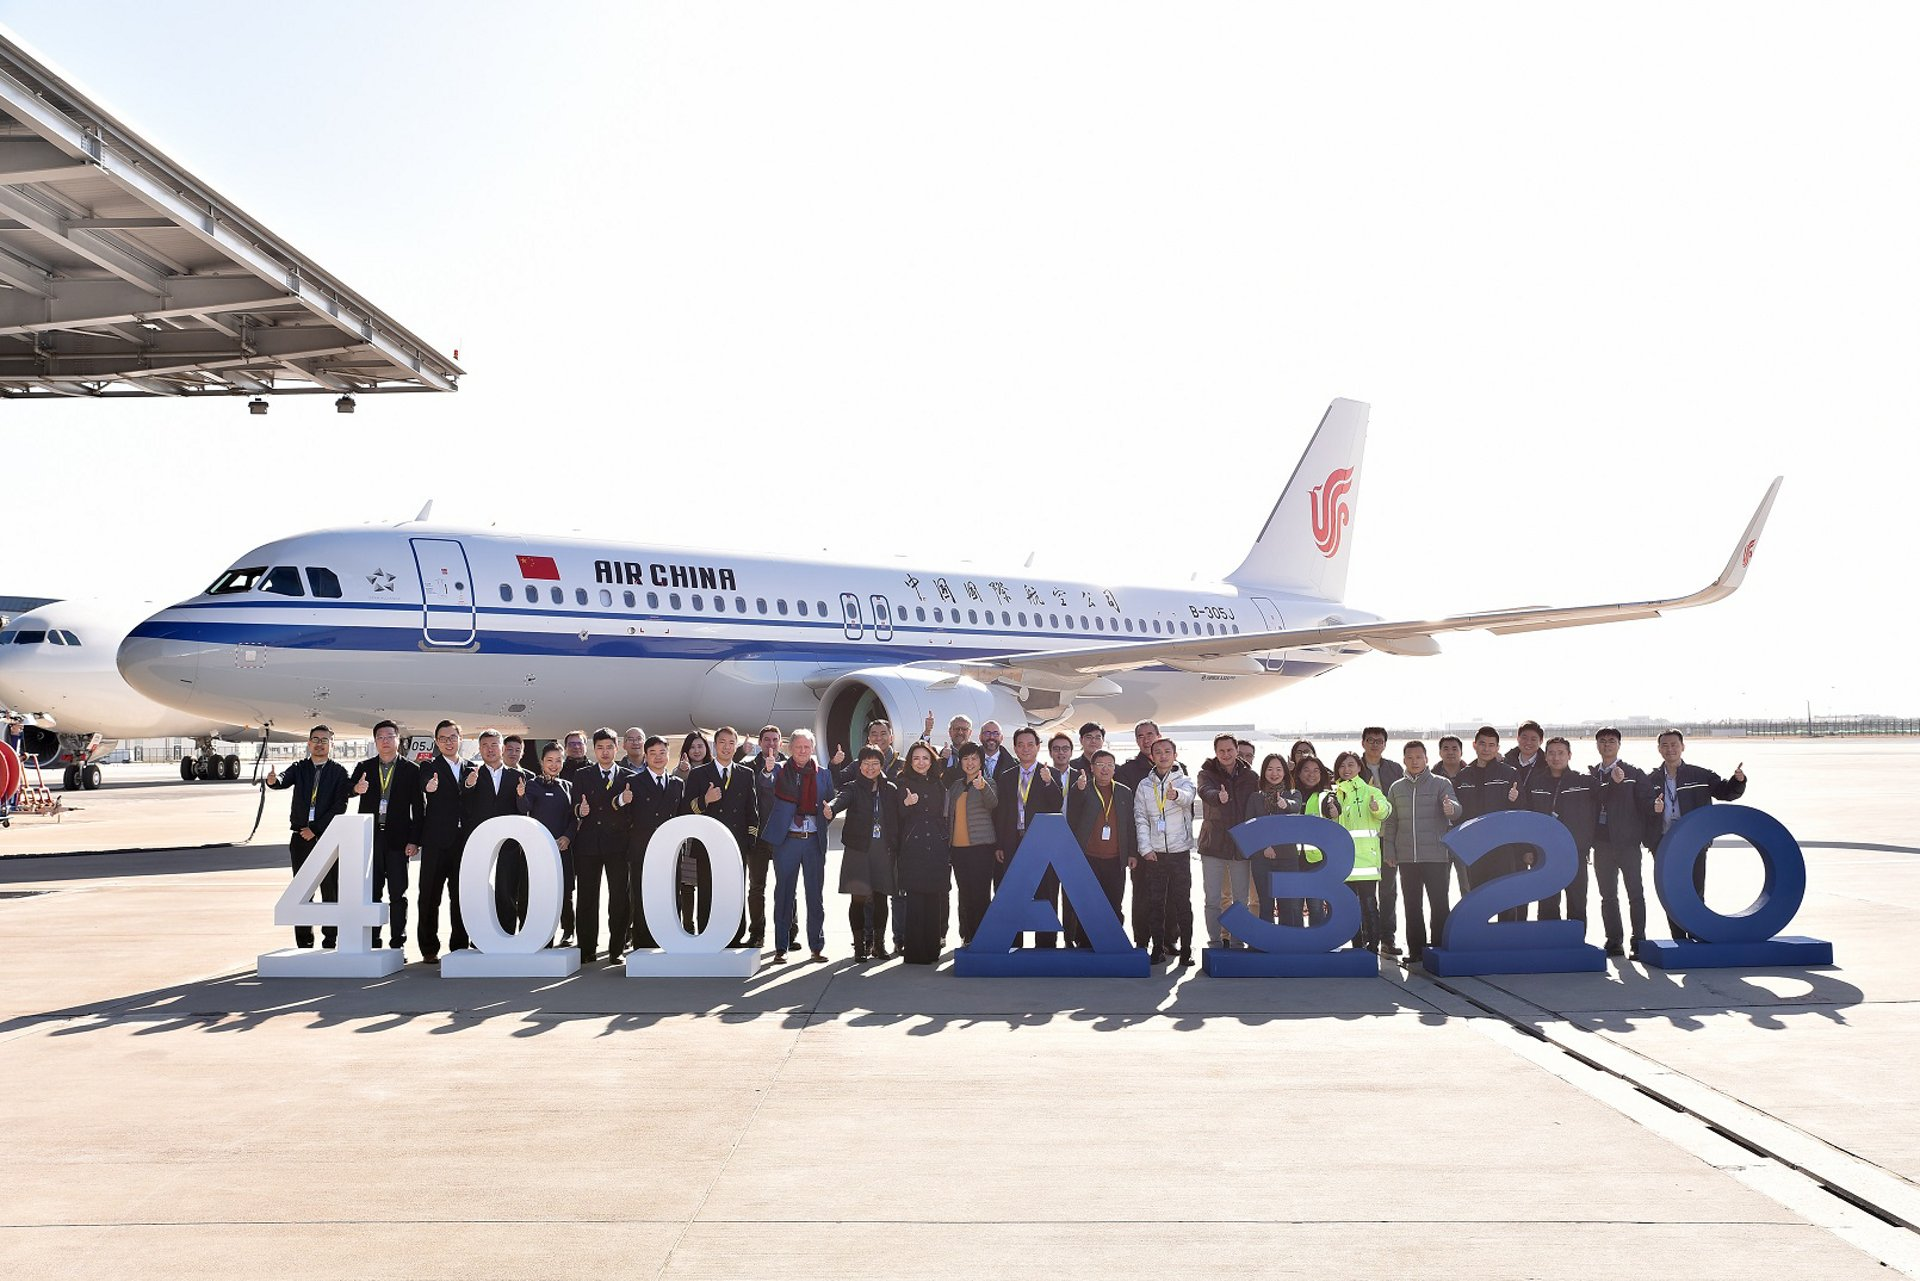 400th A320 Family jetliner from the Asian final assembly line